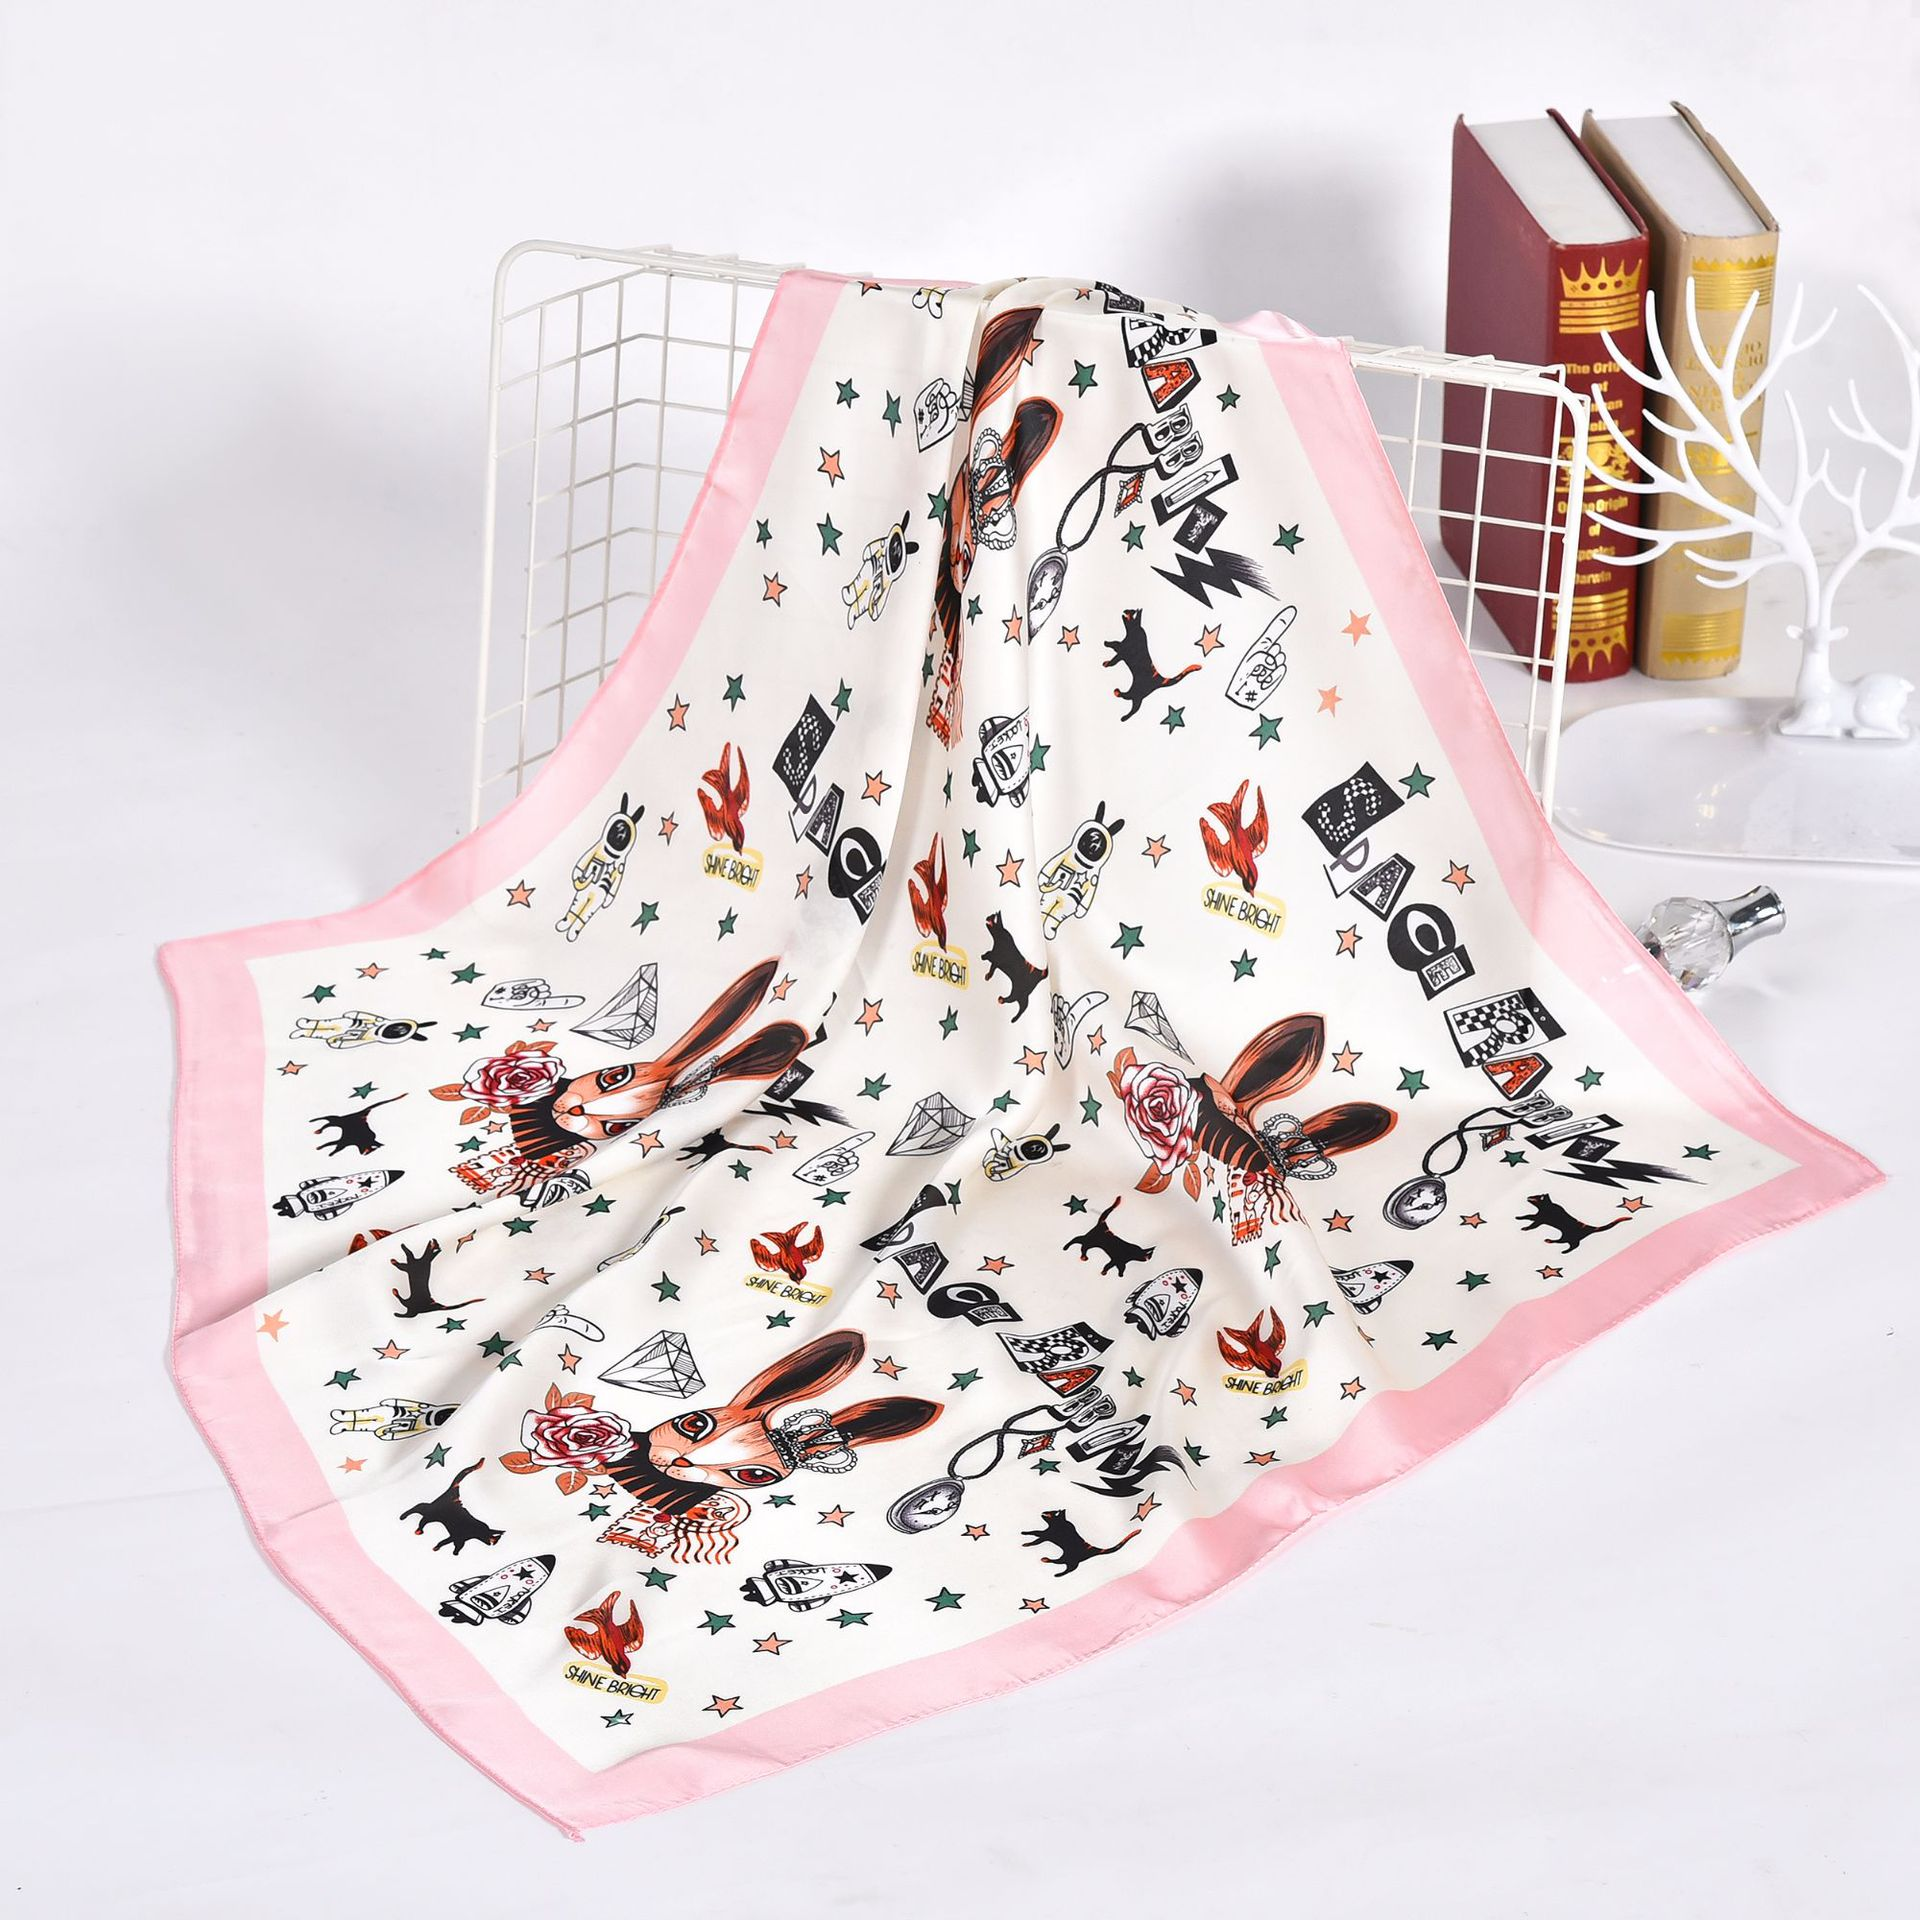 Small Shawls Silk Satin Hair Scarf For Women Fashion Cartoon Print Kerchief Bandana Head Scarfs 70*70cm Neck Scarves For Ladies